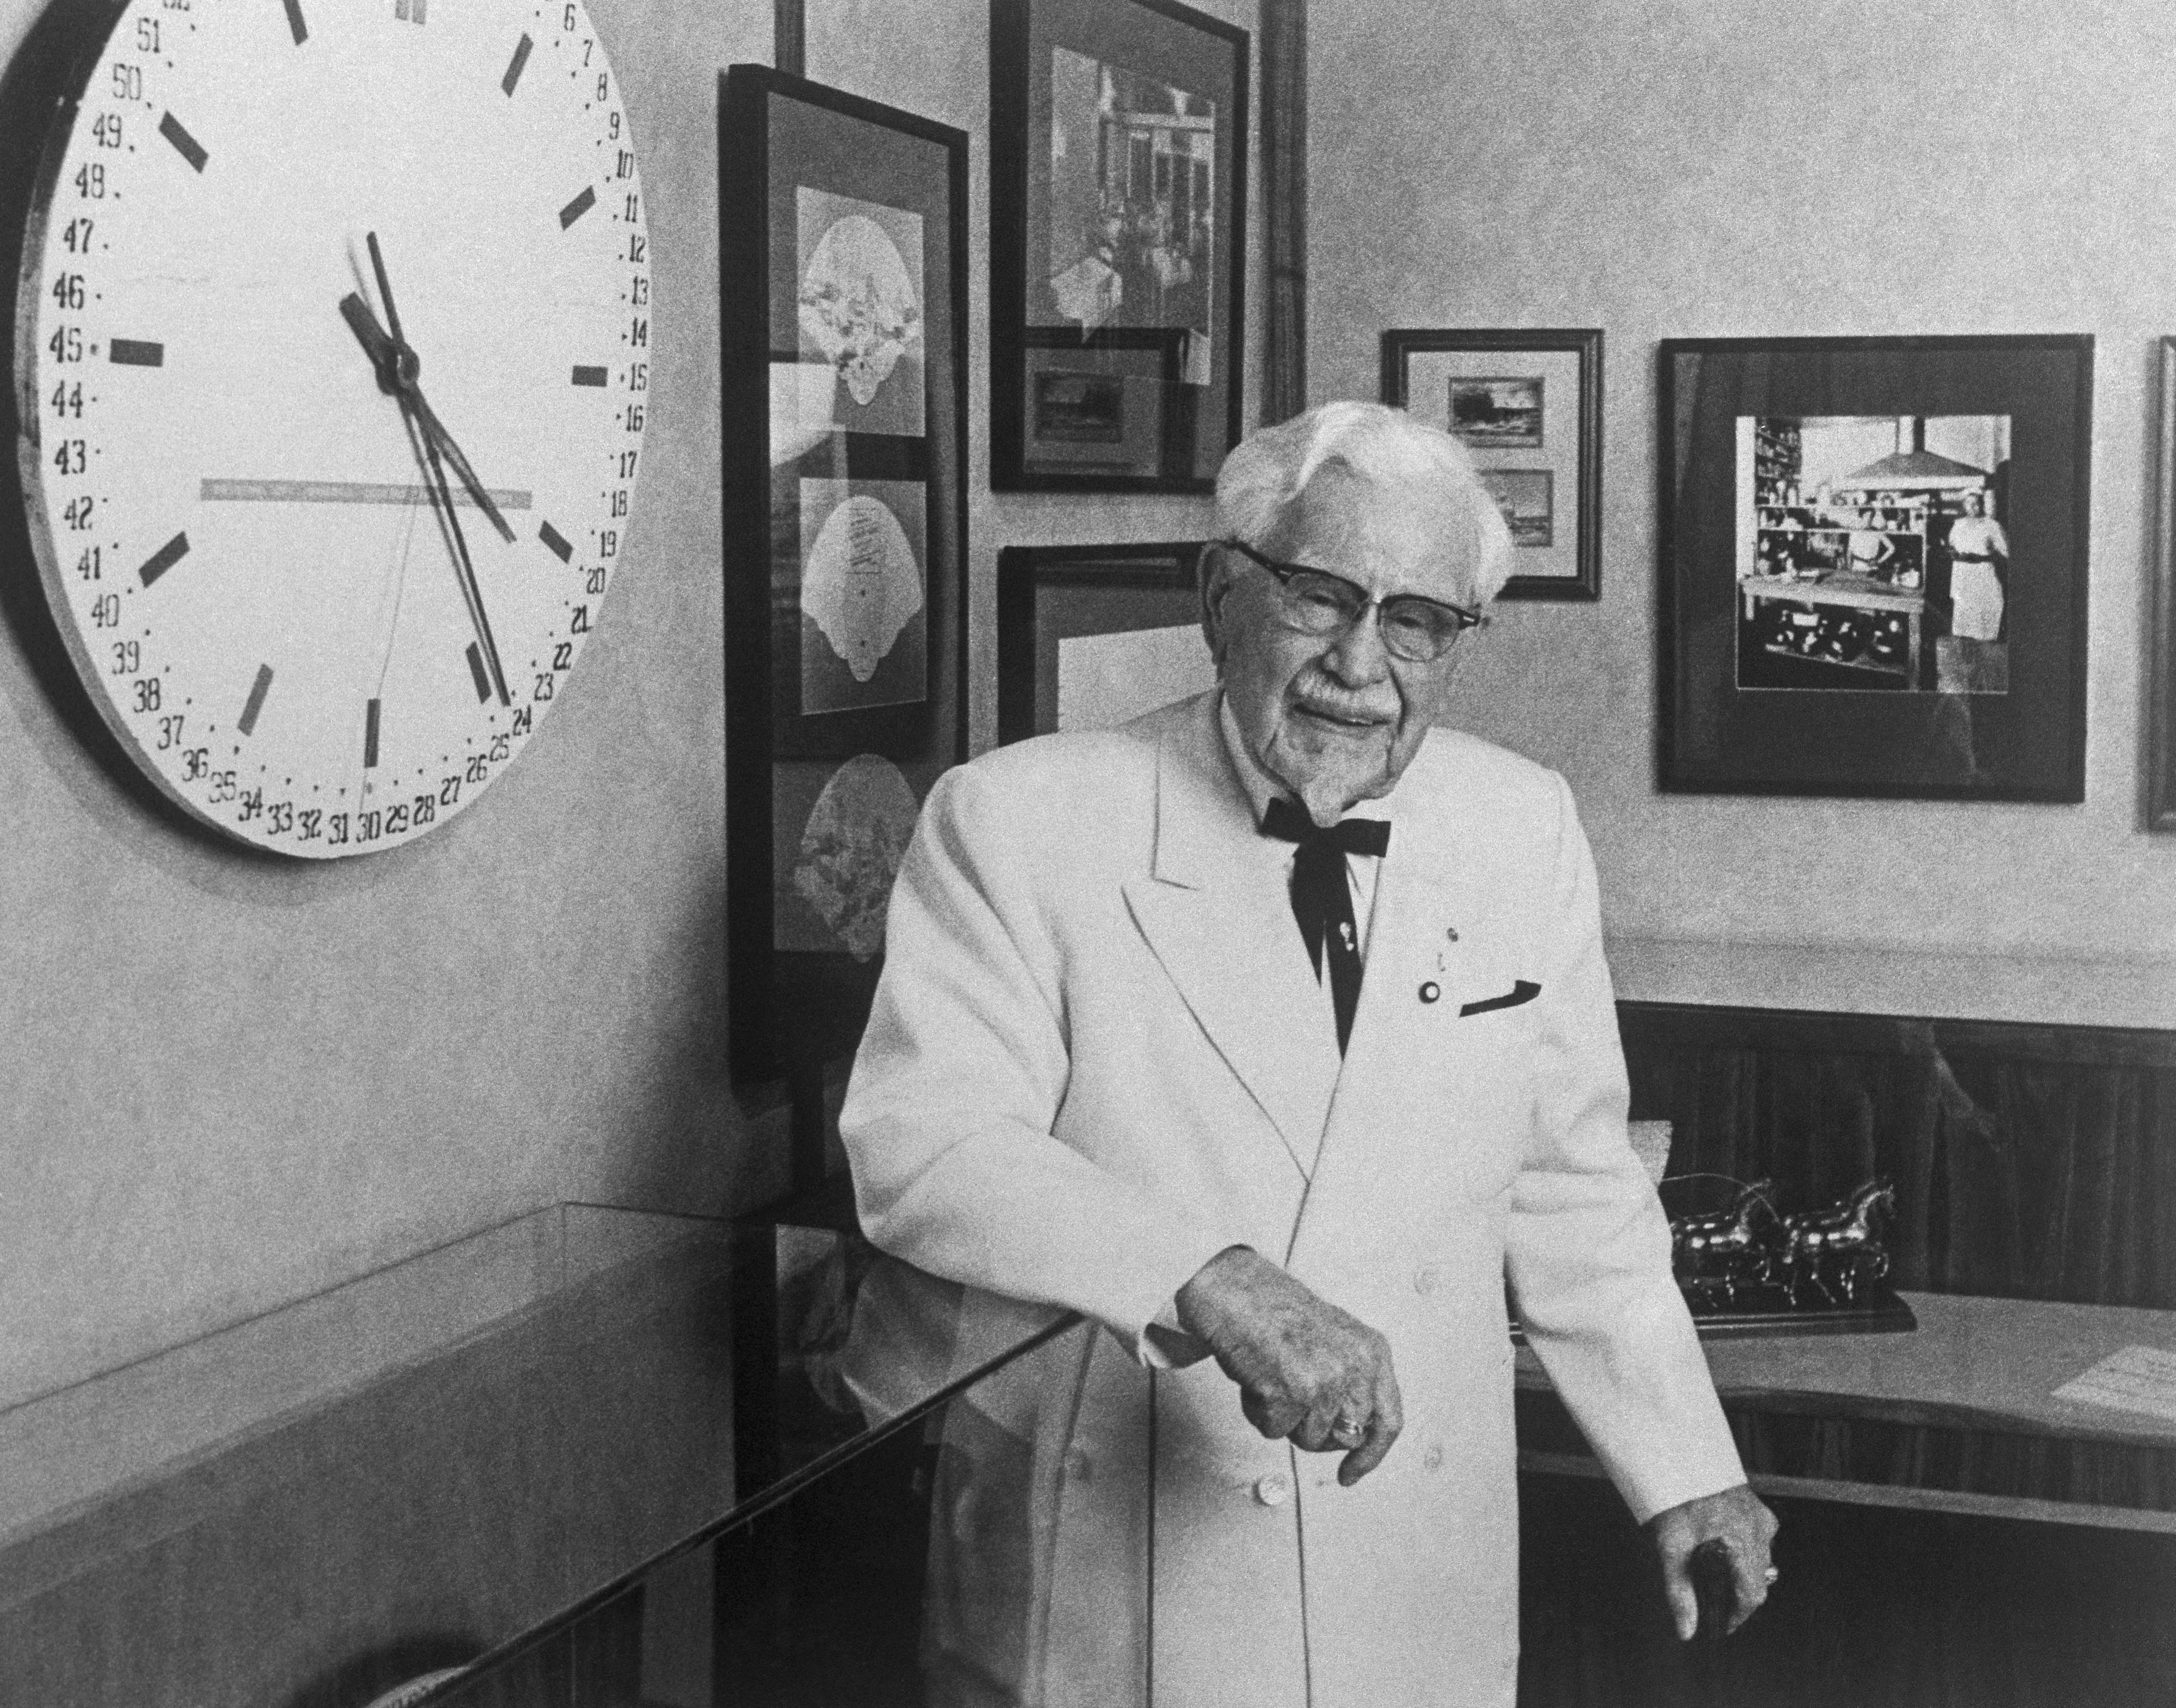 Colonel Harland Sanders Standing by Wall Clock